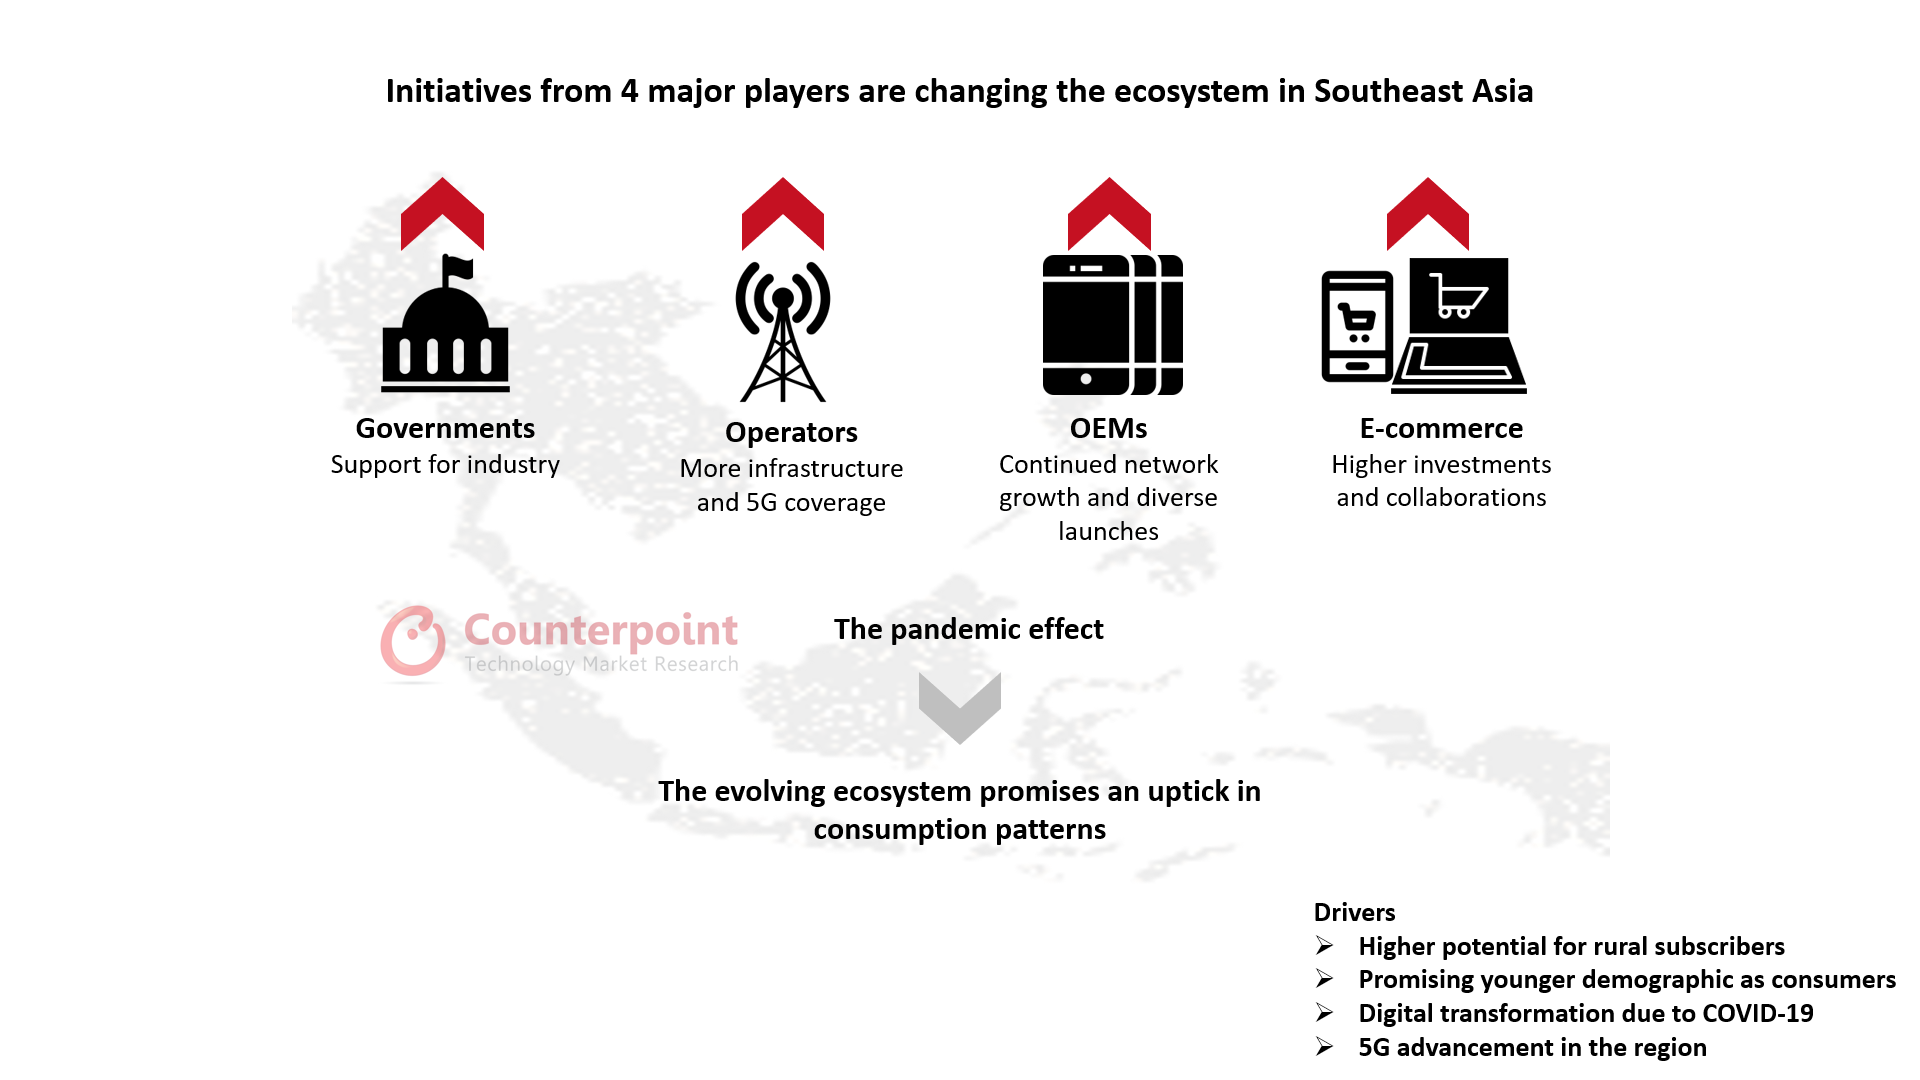 Initiatives from 4 major players are changing the ecosystem in Southeast Asia